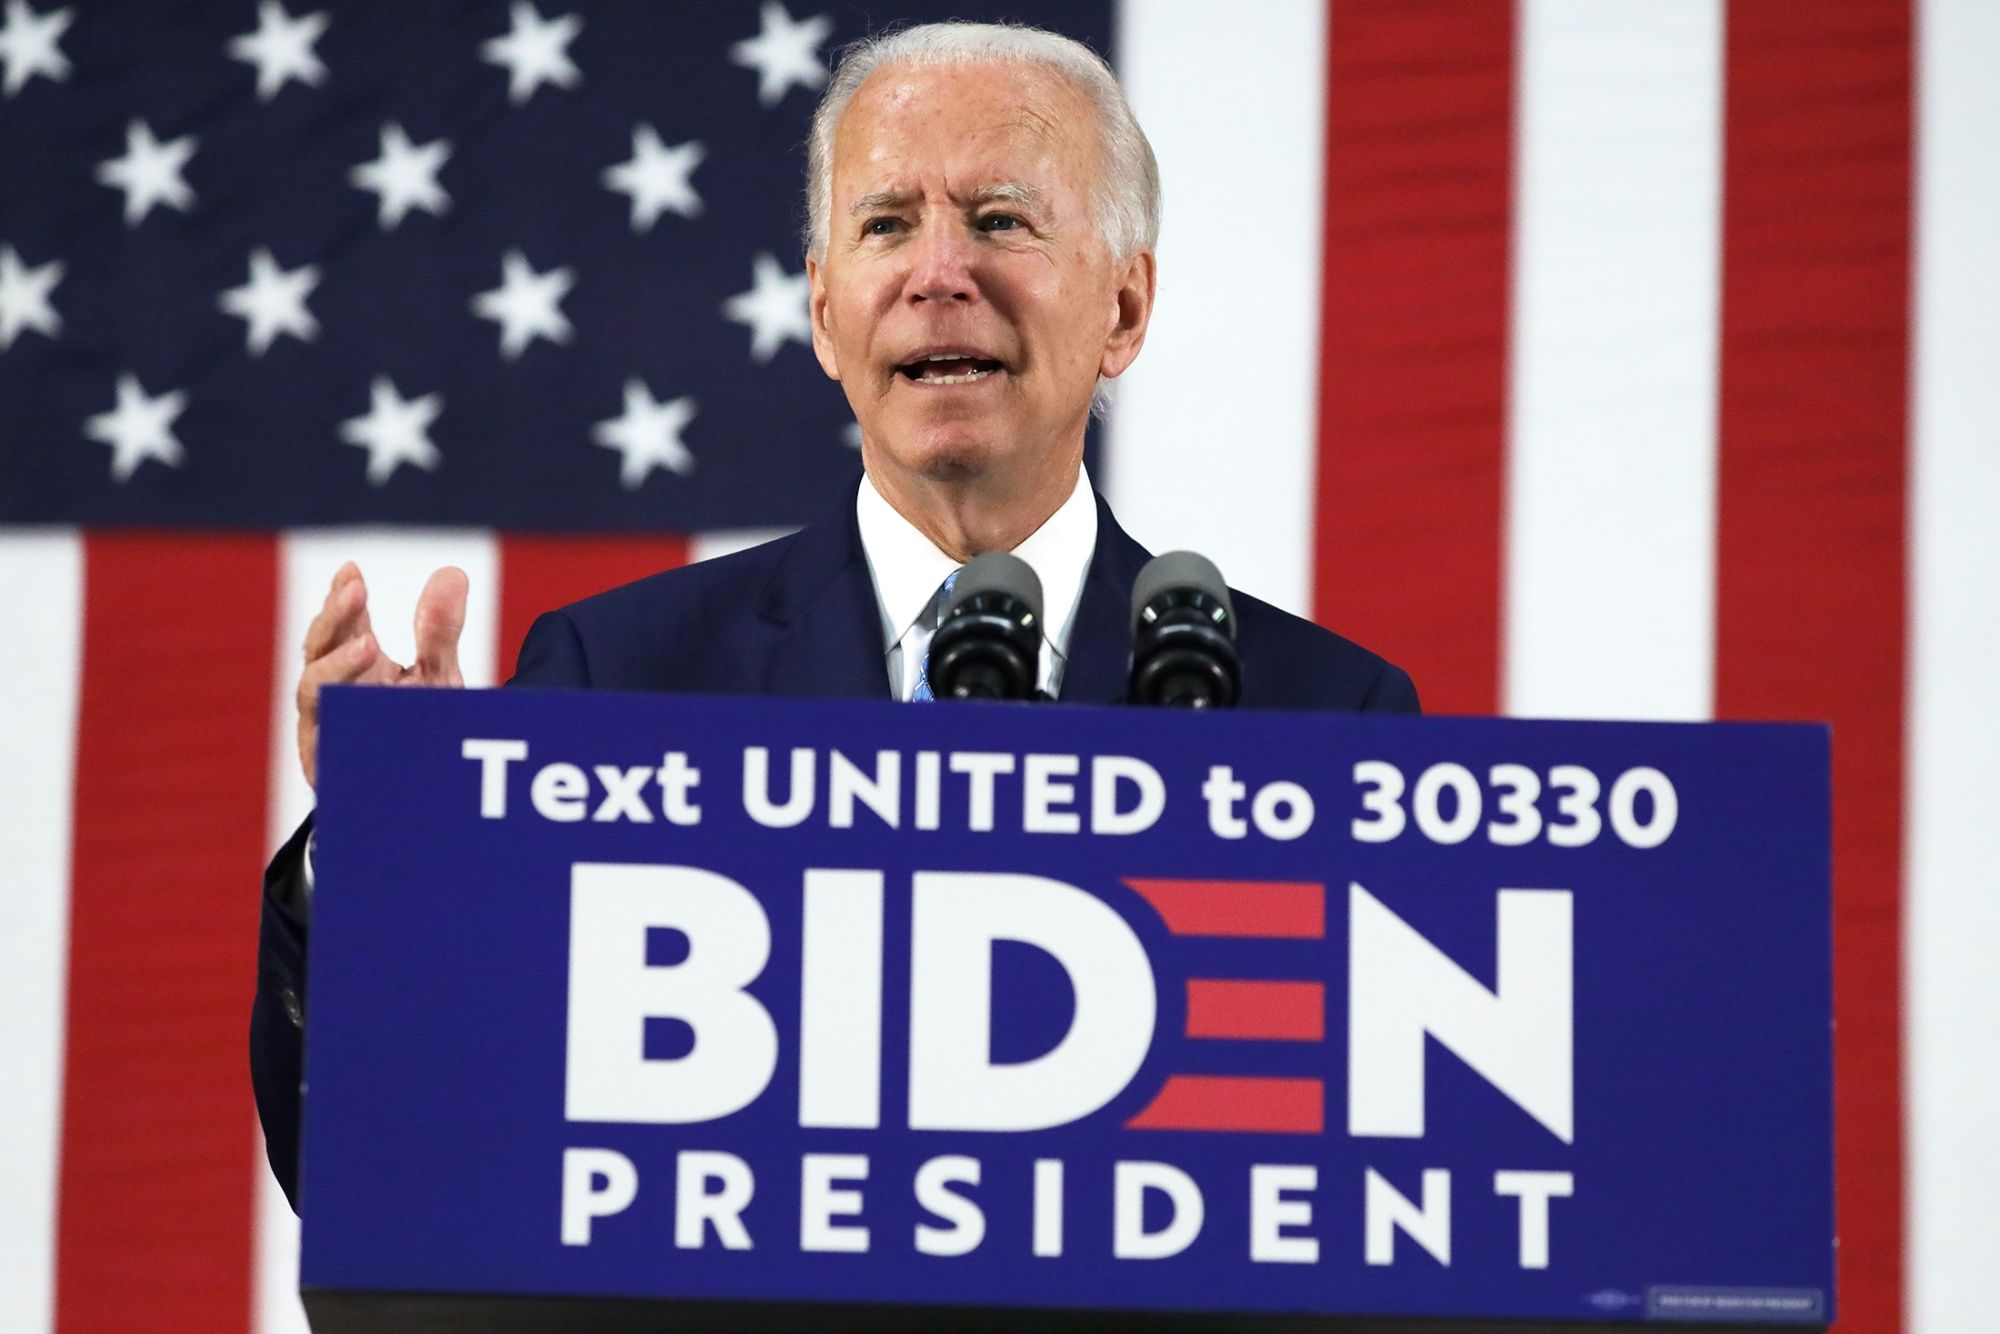 Joe Biden S Running Mate May Matter Less In 2020 Than In Any Election In A Generation Here S Why The Boston Globe